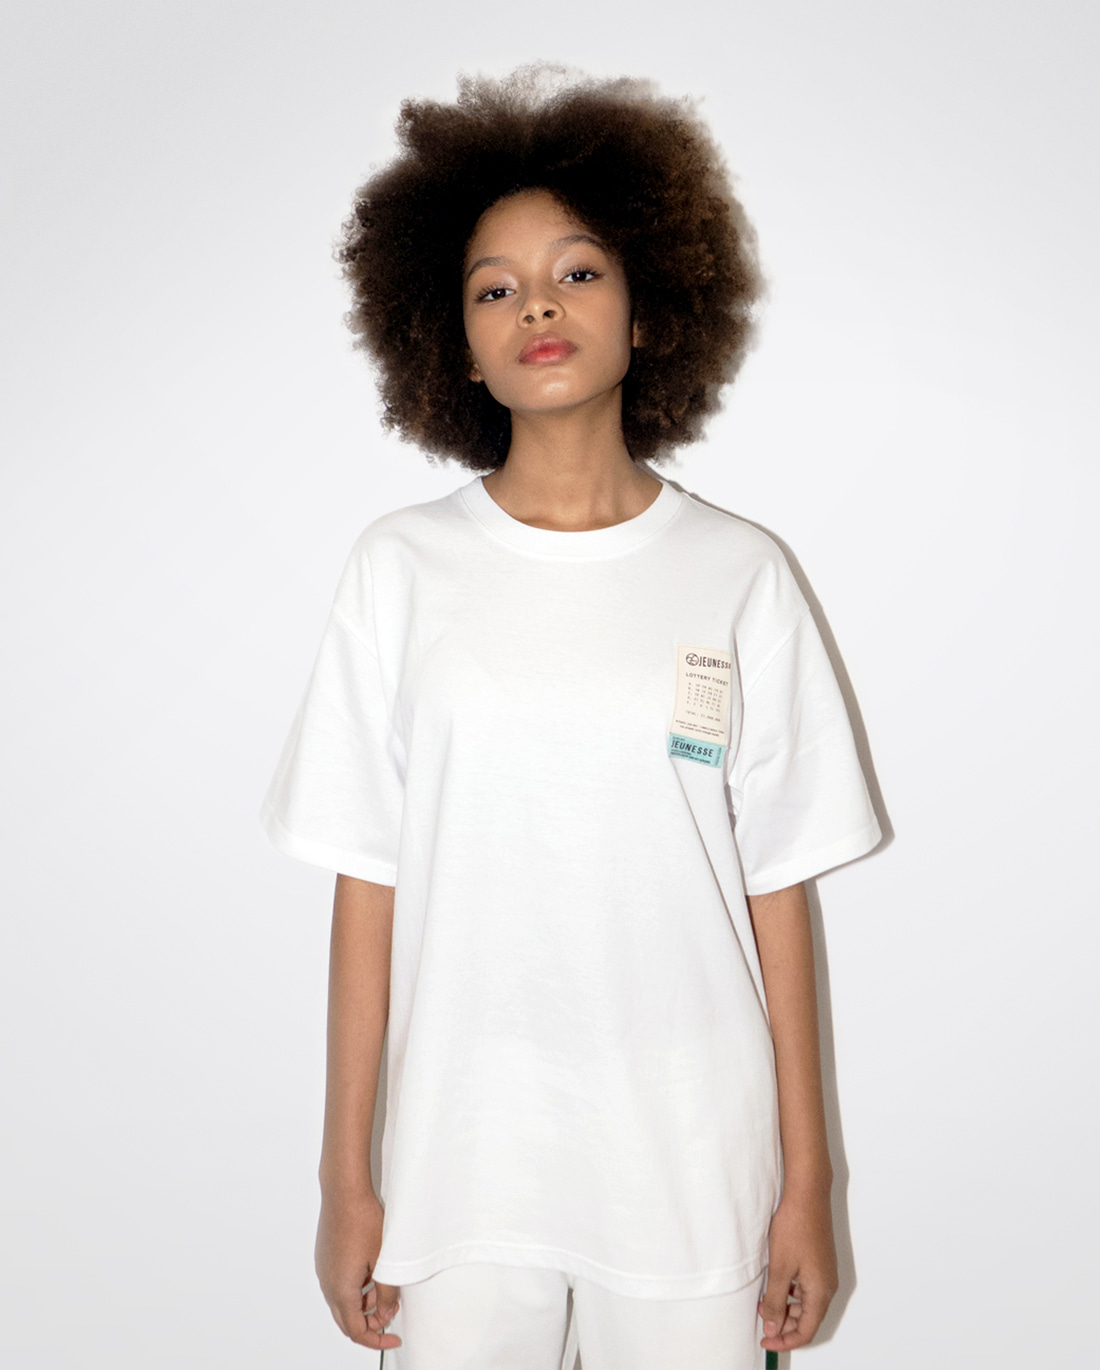 Lottery Ticket S/S Tee White